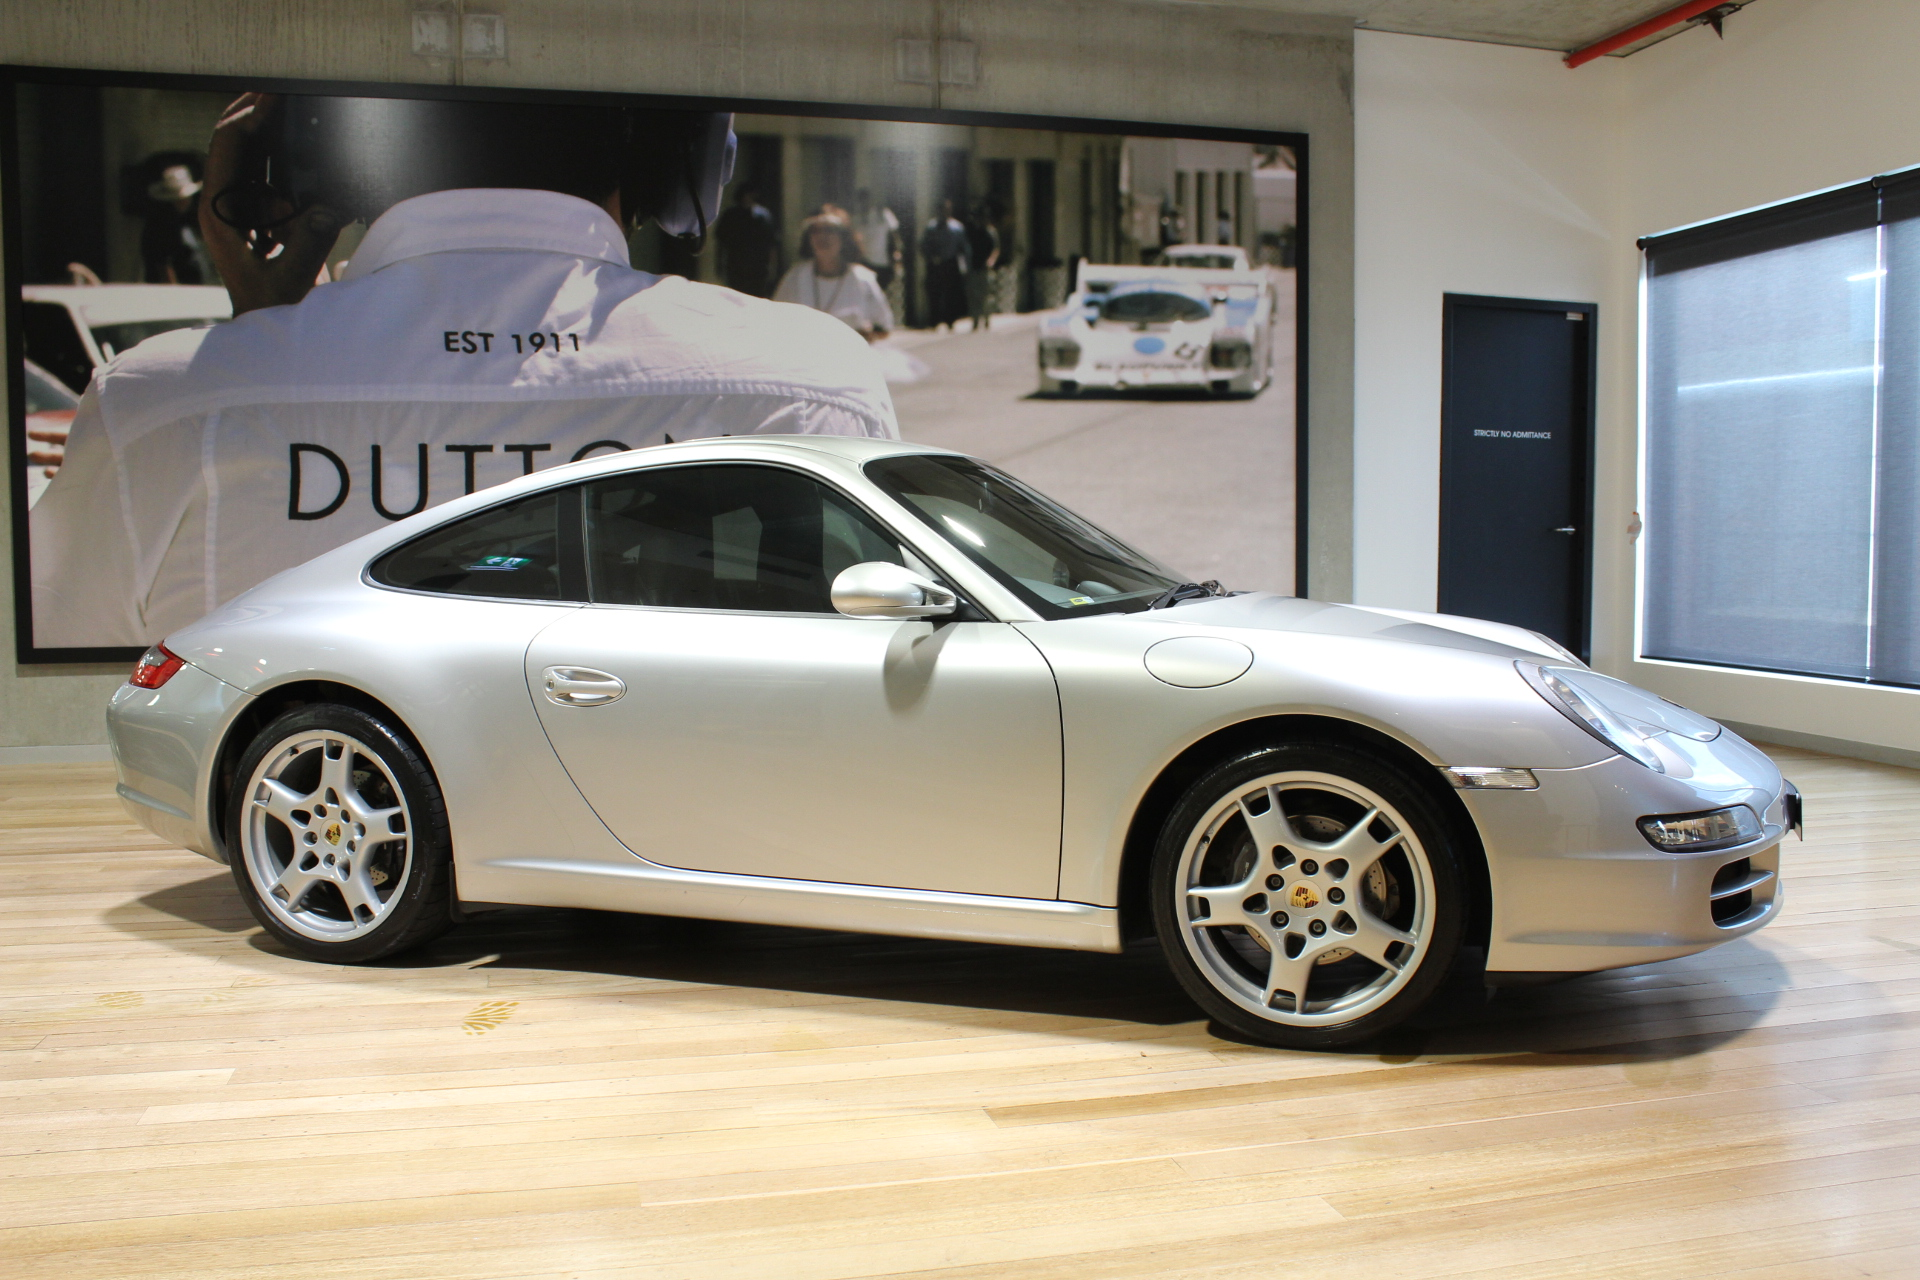 2005 PORSCHE 911 CARRERA 997- sold in Australia